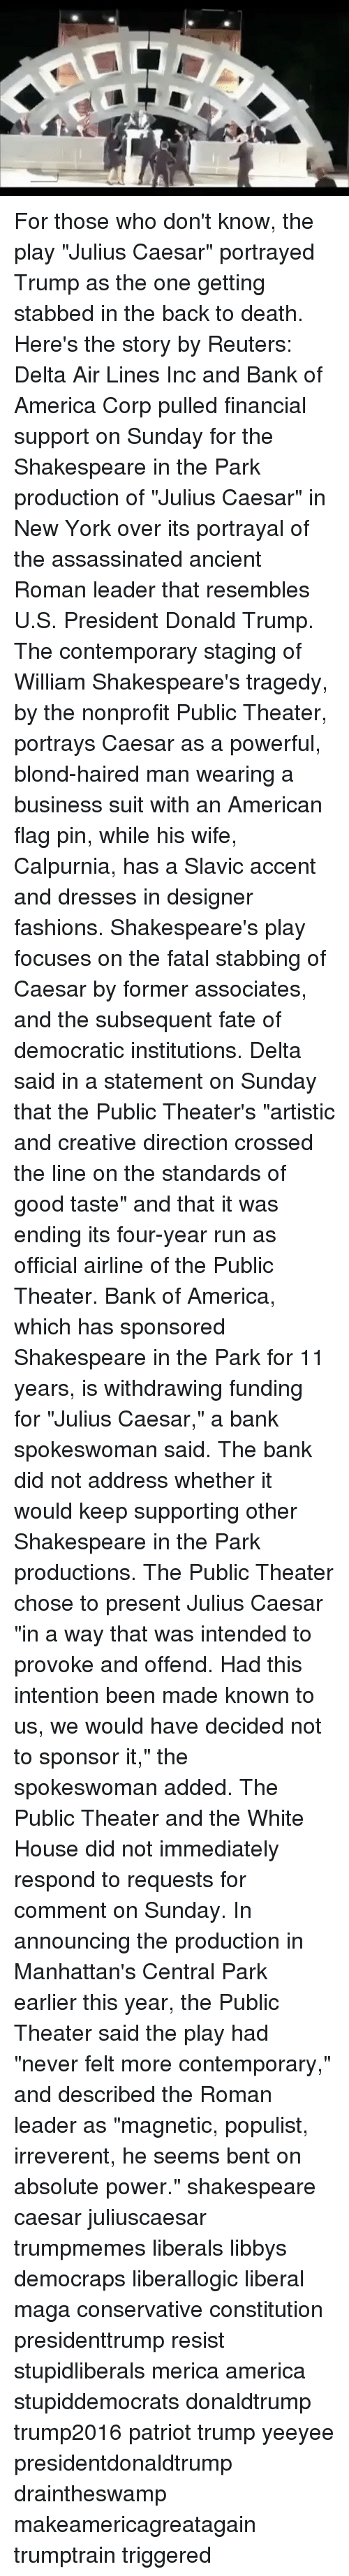 """u-s-president: For those who don't know, the play """"Julius Caesar"""" portrayed Trump as the one getting stabbed in the back to death. Here's the story by Reuters: Delta Air Lines Inc and Bank of America Corp pulled financial support on Sunday for the Shakespeare in the Park production of """"Julius Caesar"""" in New York over its portrayal of the assassinated ancient Roman leader that resembles U.S. President Donald Trump. The contemporary staging of William Shakespeare's tragedy, by the nonprofit Public Theater, portrays Caesar as a powerful, blond-haired man wearing a business suit with an American flag pin, while his wife, Calpurnia, has a Slavic accent and dresses in designer fashions. Shakespeare's play focuses on the fatal stabbing of Caesar by former associates, and the subsequent fate of democratic institutions. Delta said in a statement on Sunday that the Public Theater's """"artistic and creative direction crossed the line on the standards of good taste"""" and that it was ending its four-year run as official airline of the Public Theater. Bank of America, which has sponsored Shakespeare in the Park for 11 years, is withdrawing funding for """"Julius Caesar,"""" a bank spokeswoman said. The bank did not address whether it would keep supporting other Shakespeare in the Park productions. The Public Theater chose to present Julius Caesar """"in a way that was intended to provoke and offend. Had this intention been made known to us, we would have decided not to sponsor it,"""" the spokeswoman added. The Public Theater and the White House did not immediately respond to requests for comment on Sunday. In announcing the production in Manhattan's Central Park earlier this year, the Public Theater said the play had """"never felt more contemporary,"""" and described the Roman leader as """"magnetic, populist, irreverent, he seems bent on absolute power."""" shakespeare caesar juliuscaesar trumpmemes liberals libbys democraps liberallogic liberal maga conservative constitution presidenttrump resist stupi"""